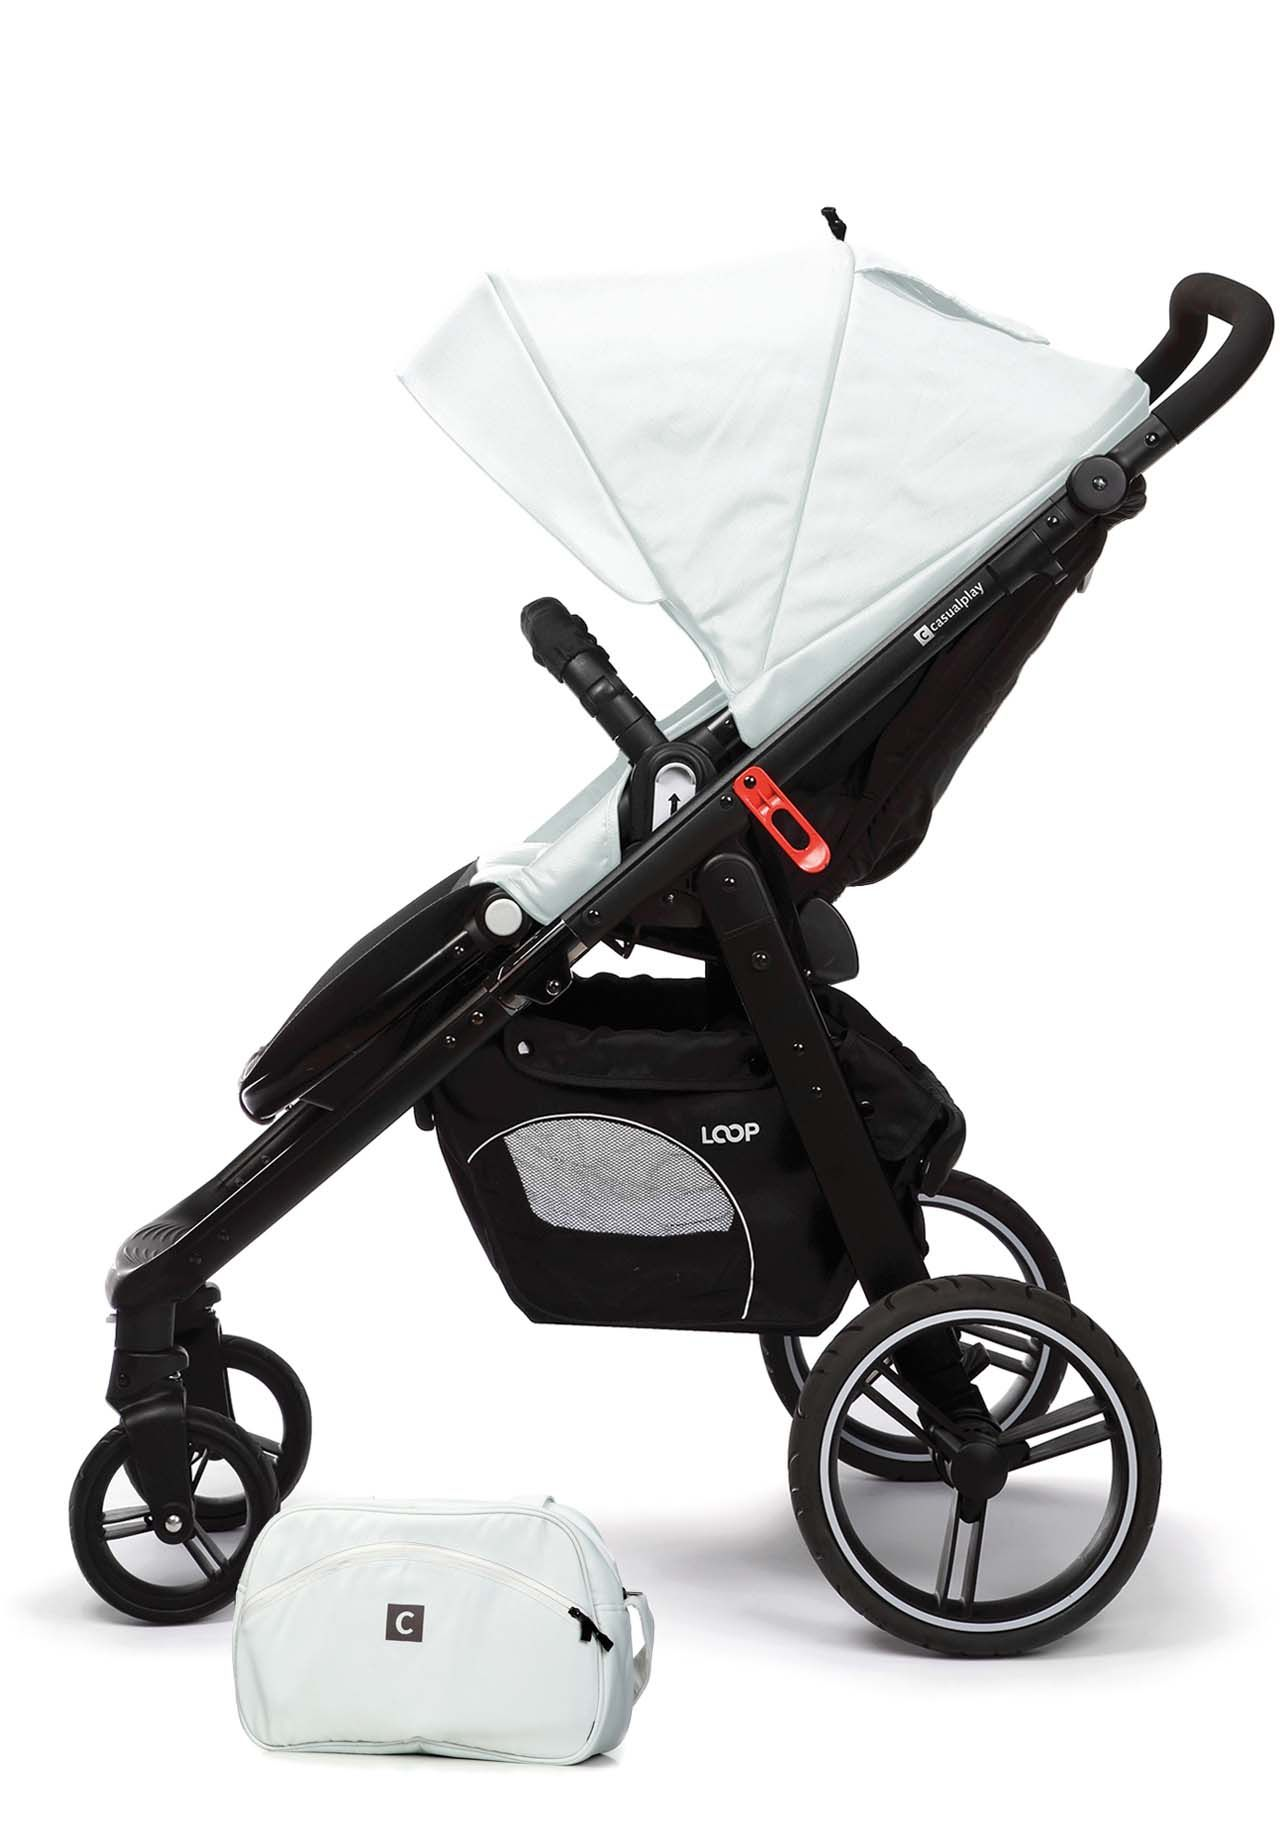 Casual Play Match 3 Cot Loop/Baby0+/Cot Ice ´15